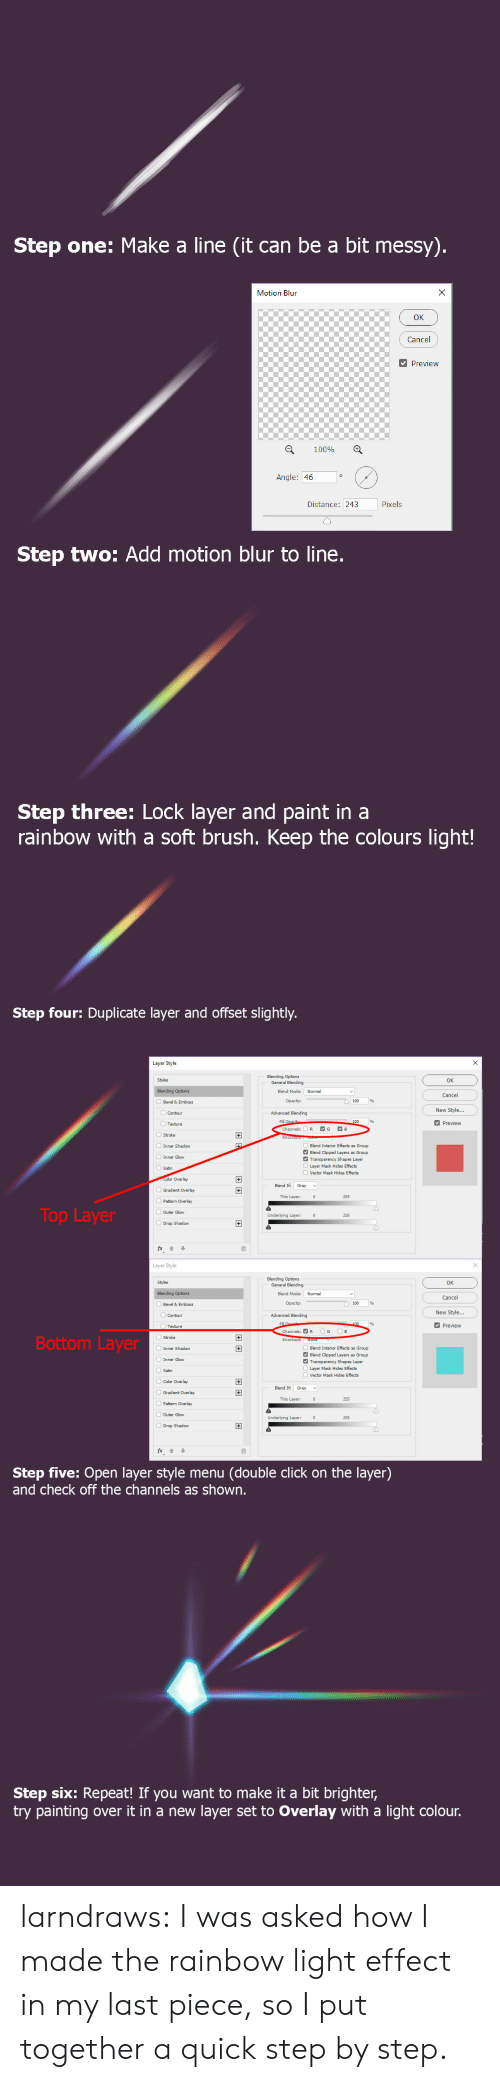 Put Together: Step one: Make a line (it can be a bit messy).  X  Motion Blun  Cancel  Preview  100%  Angle: 46  Pixels  Distance: 243  Step two: Add motion blur to line.  Step three: Lock layer and paint in a  rainbow with a soft brush. Keep the colours light!   Step four: Duplicate layer and offset slightly.  Layer Style  Blending Options  General Blending  Styles  OK  Blending Options  Blend Mode:  Normal  Cancel  Opacity:  Bevel & Emboss  New Style...  Advanced Blending  Contour  Fill Opacib  Channels:  Preview  Texture  G  B  R  +  Stroke  Inner Shadow  Blend Interior Effects  Blend Clipped Layers  Transparency Shapes Layer  s Group  Group  Inner Glow  Layer Mask Hides Effects  Satin  Vector Mask Hides Effects  Color Overlay  +  Blend If  Gray  Gradient Overlay  This Layer:  255  Pattern Overlay  Top Layer  OOuter Glow  Underlying Layer:  255  Drop Shadow  Layer Style  Blending Options  General Blending  Styles  OK  Normal  Blending Options  Blend Mode:  Cancel  Opacity:  Bevel & Emboss  New Style...  Advanced Blending  Contour  Fill  100  Preview  Texture  G  B  Channels: R  Bottom Layer  Knockout: None  Inner Shadow  Blend Interior Effects  Blend Clipped Layers  Transparency Shapes Layer  Layer Mask Hides Effects  +  s Group  Group  Inner Glow  Satin  Vector Mask Hides Effects  Color Overlay  +  Blend If  Gradient Overlay  +  This Layer:  255  Pattern Overlay  Outer Glow  Underlying Layer:  255  Drop Shadow  fx  Step five: Open layer style menu  and check off the channels as shown.  (double click on the layer)   Step six: Repeat! If you want to make it a bit brighter,  try painting  layer set to Overlay with a light colour.  over it in a new larndraws:  I was asked how I made the rainbow light effect in my last piece, so I put together a quick step by step.